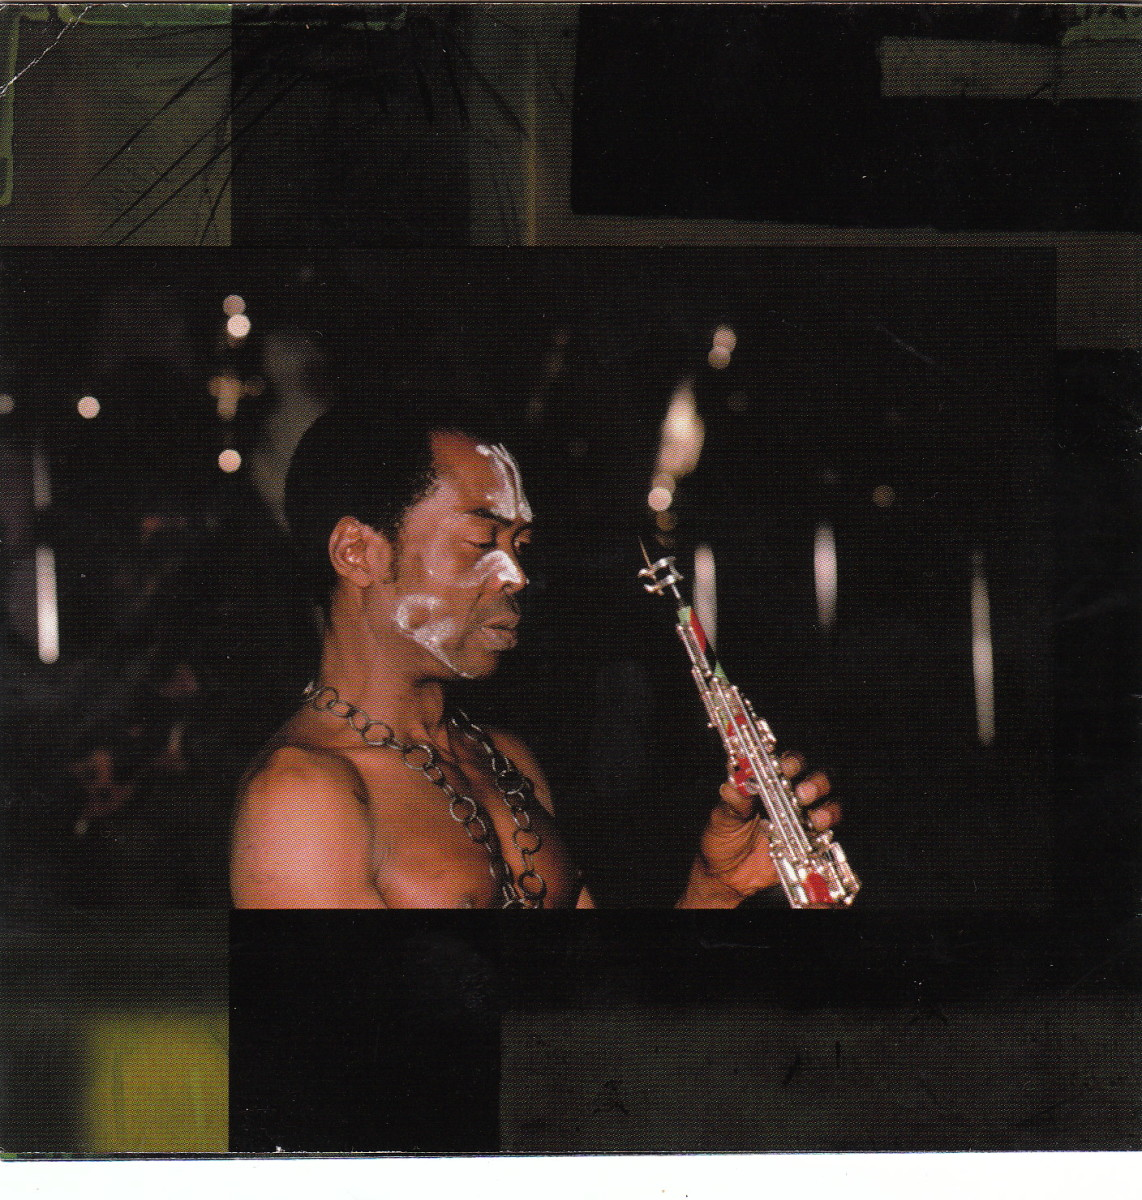 Fela Kuti in performance about to play his sax